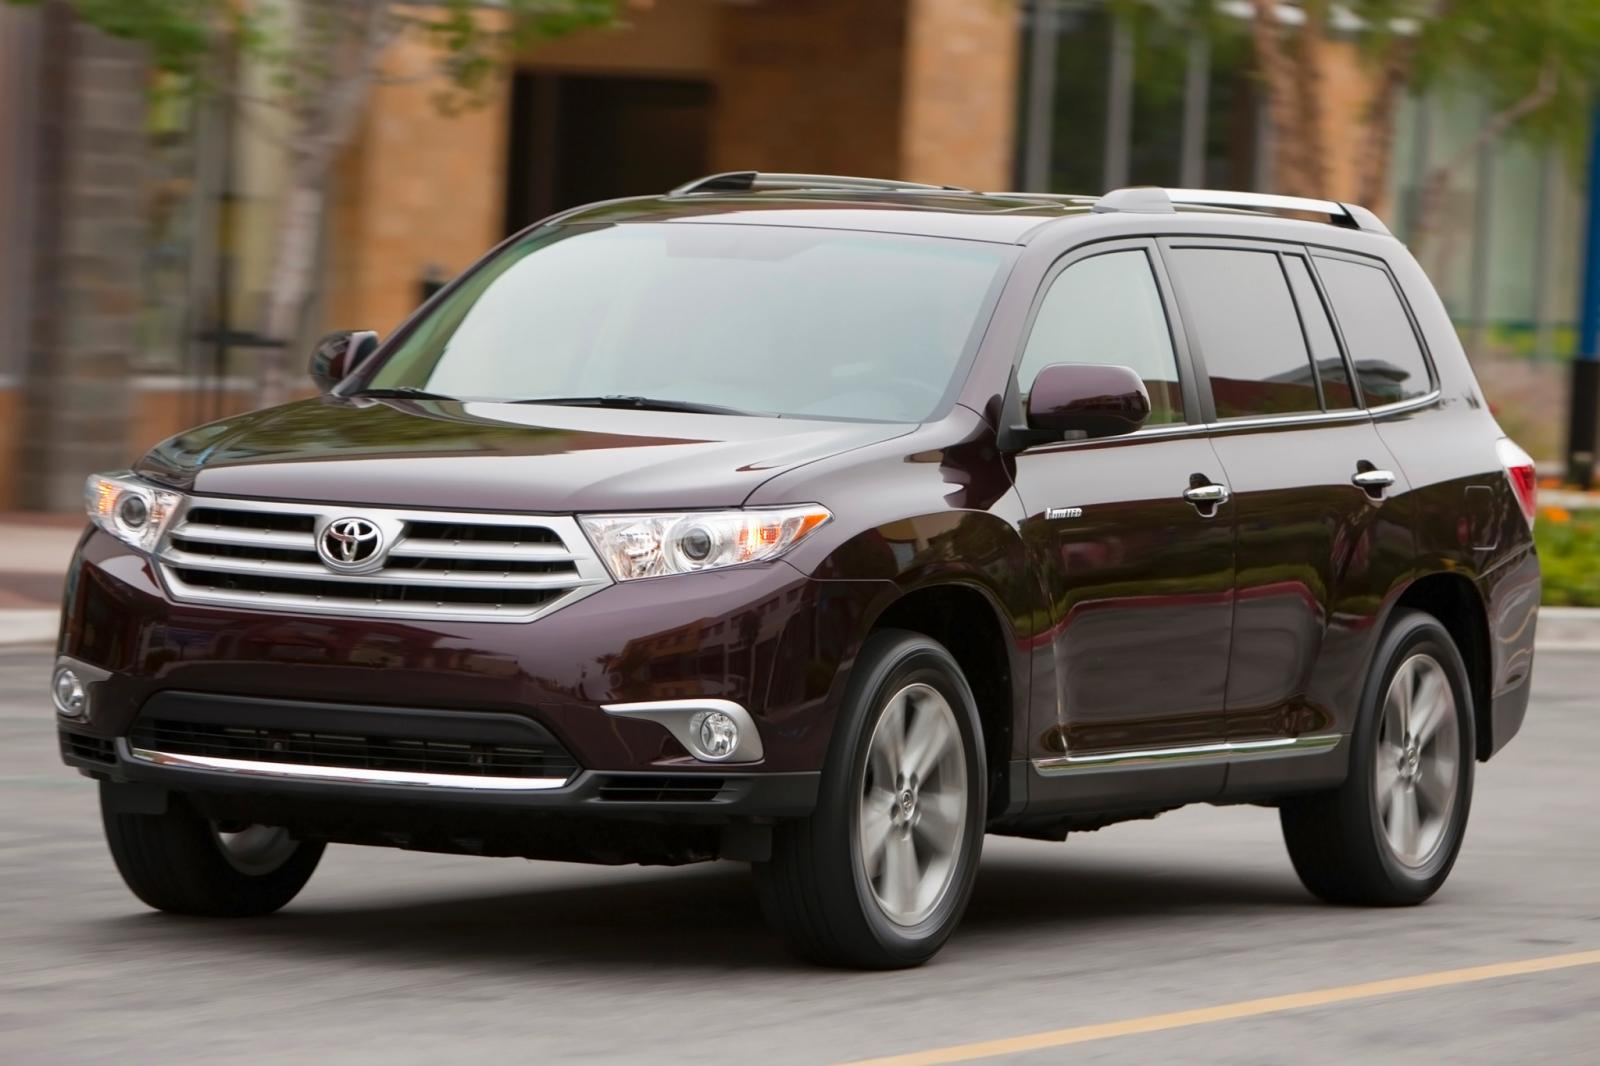 2013 toyota highlander information and photos zombiedrive. Black Bedroom Furniture Sets. Home Design Ideas